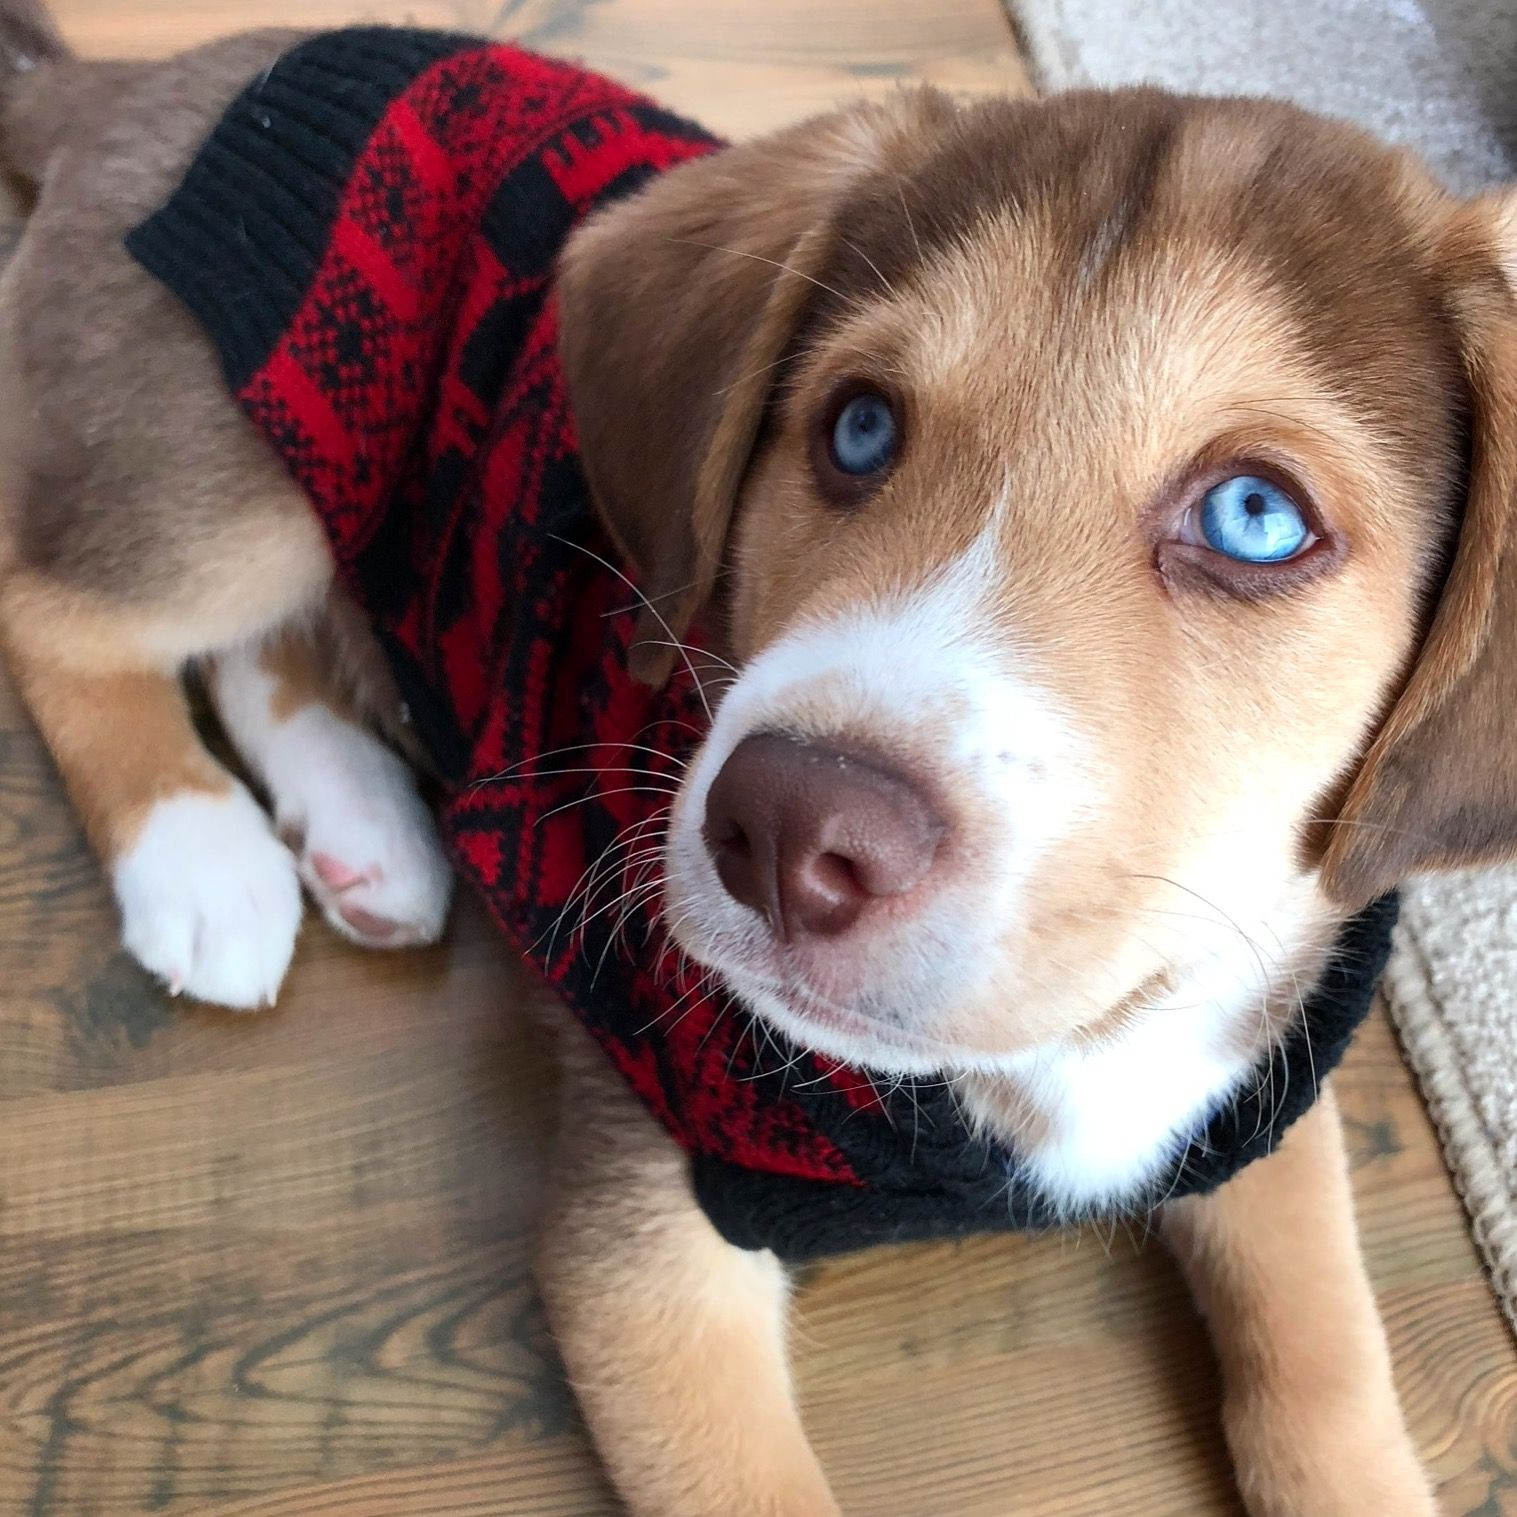 Goodboygryff The Most Beautiful Dog Look At Those Blue Eyes Half Beagle Half Husky All Adventure Most Beautiful Dogs Beautiful Dogs Animals